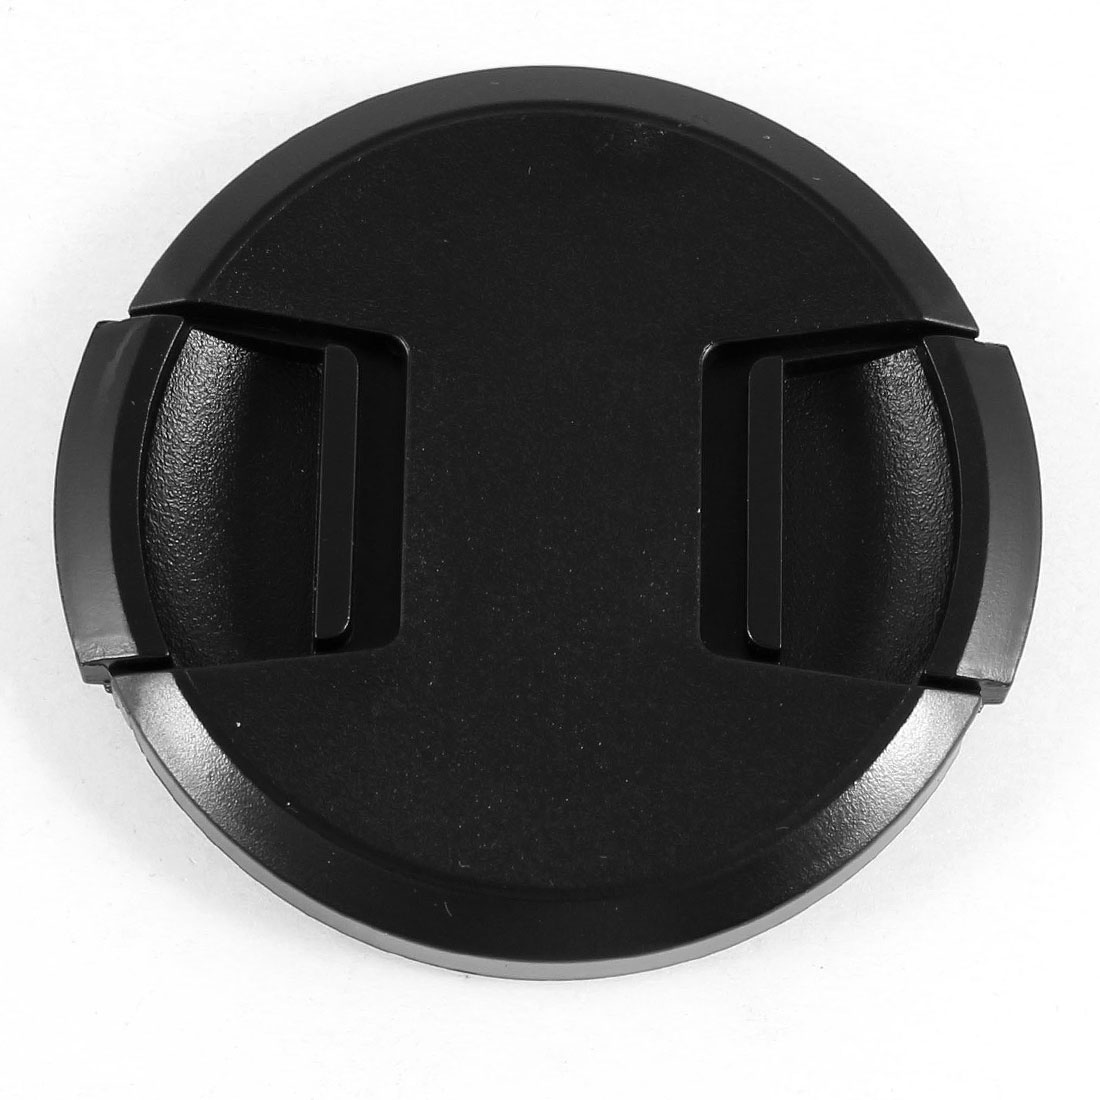 Replacement Black 62mm Front Lens Cap Cover Protetcor for DSLR SLR Camera